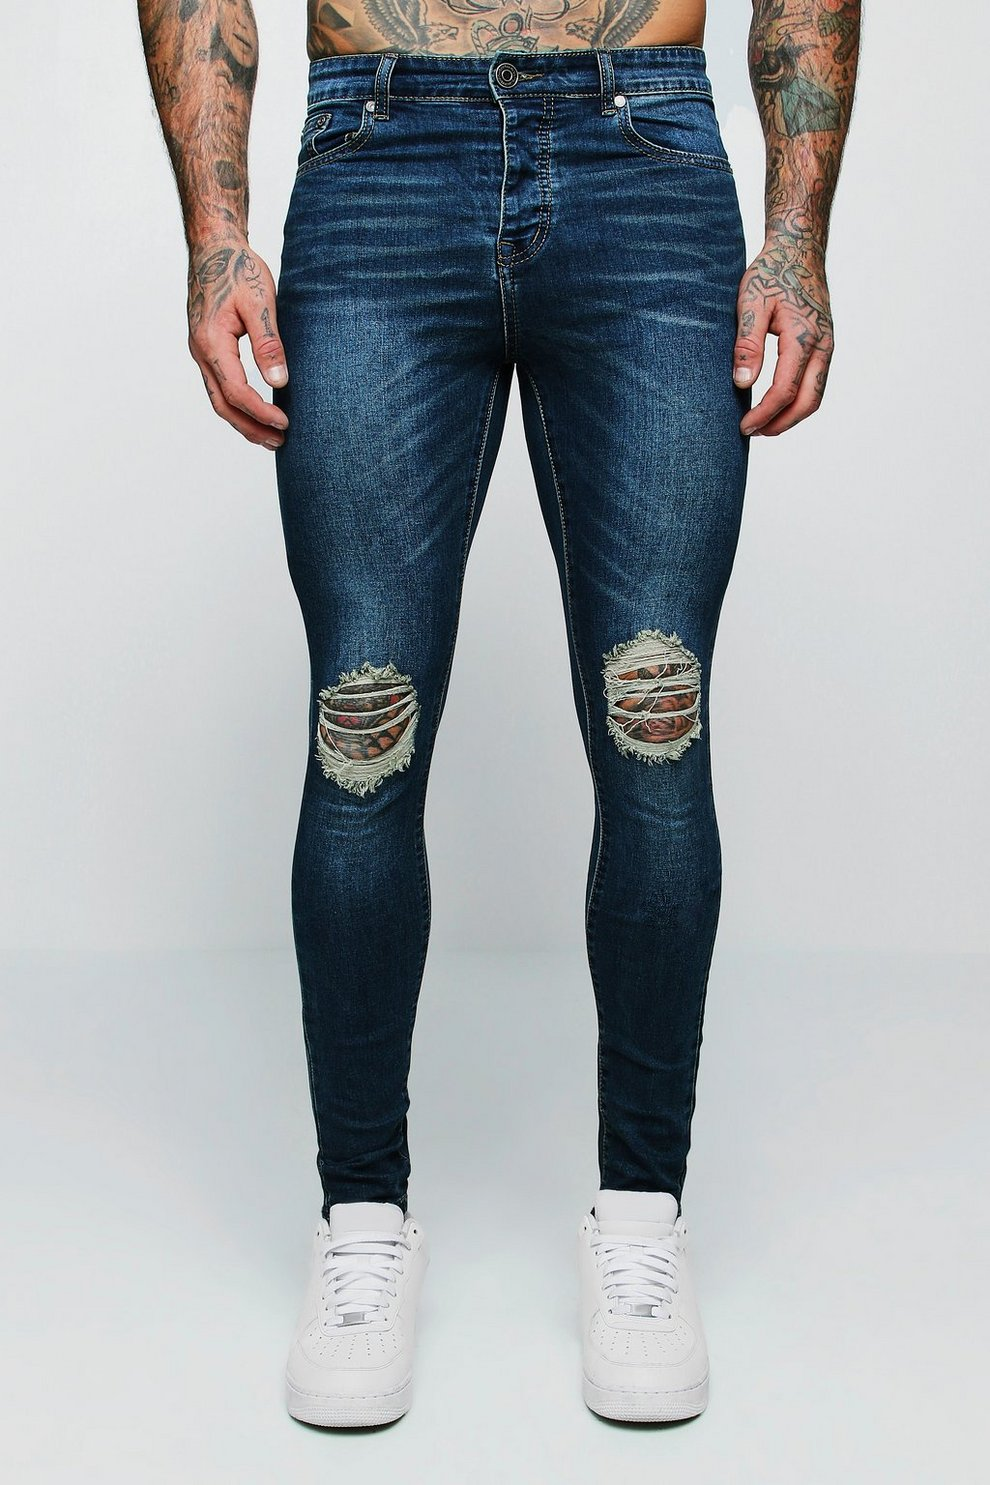 a61842a2c036 Mens Antique wash Spray On Skinny Jeans With Ripped Knees